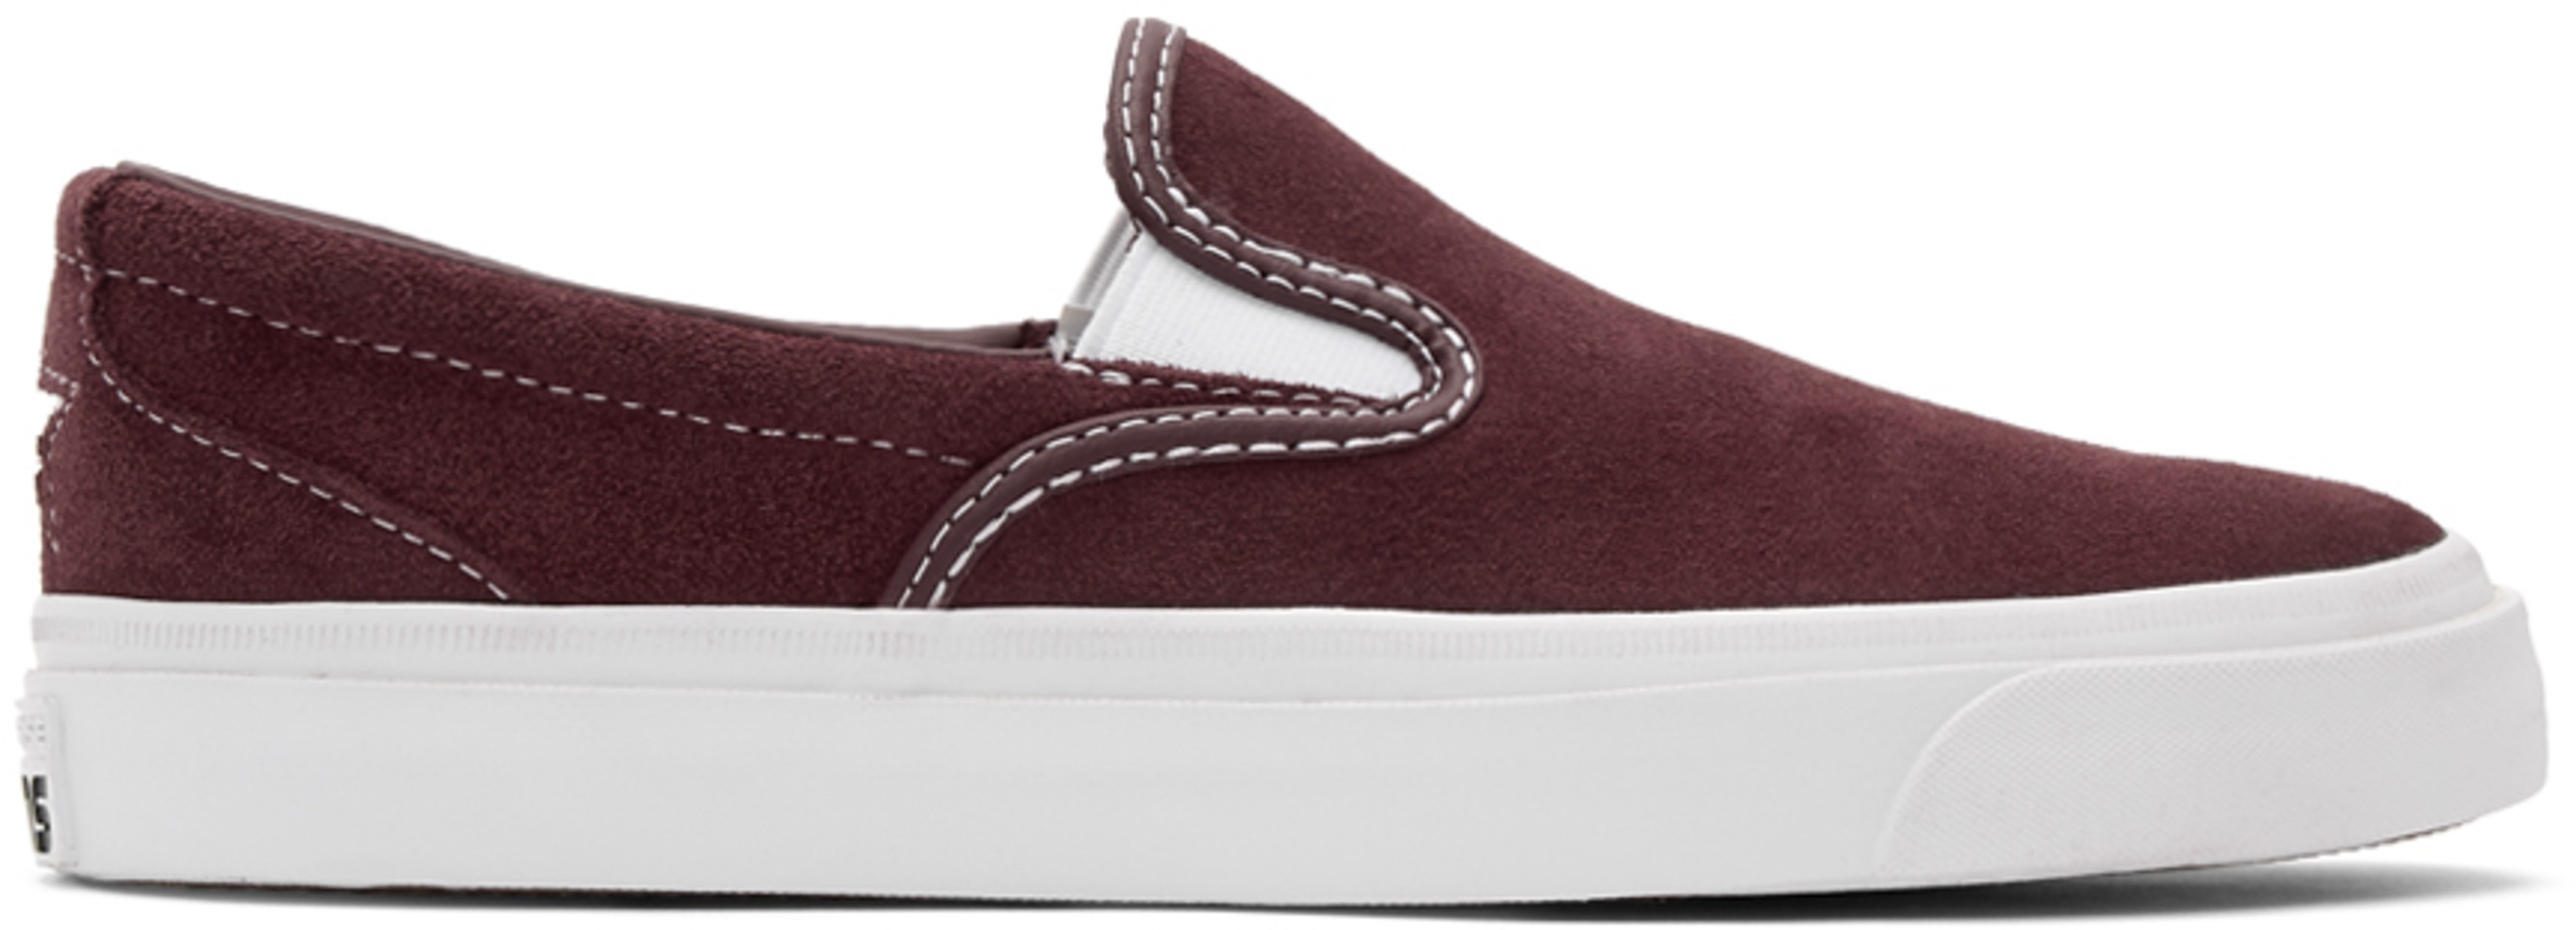 227e8f0fbb1565 Converse for Men SS19 Collection